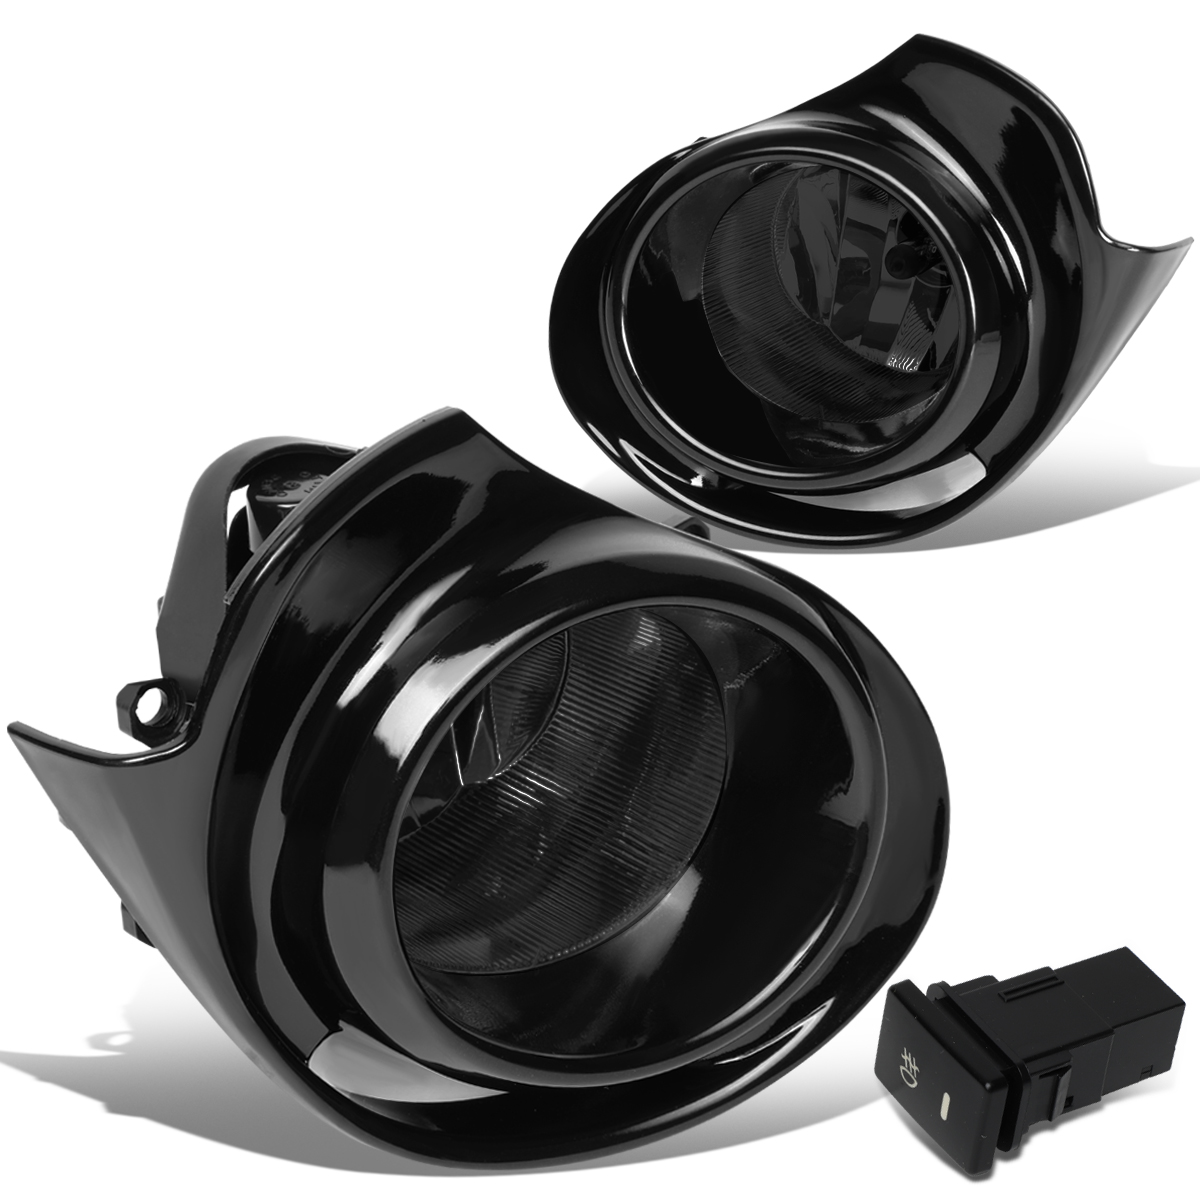 For 15-18 Toyota Prius C Pair Front Bumper Fog Light/Lamp+Switch+Bezel Smoked Lens 16 17